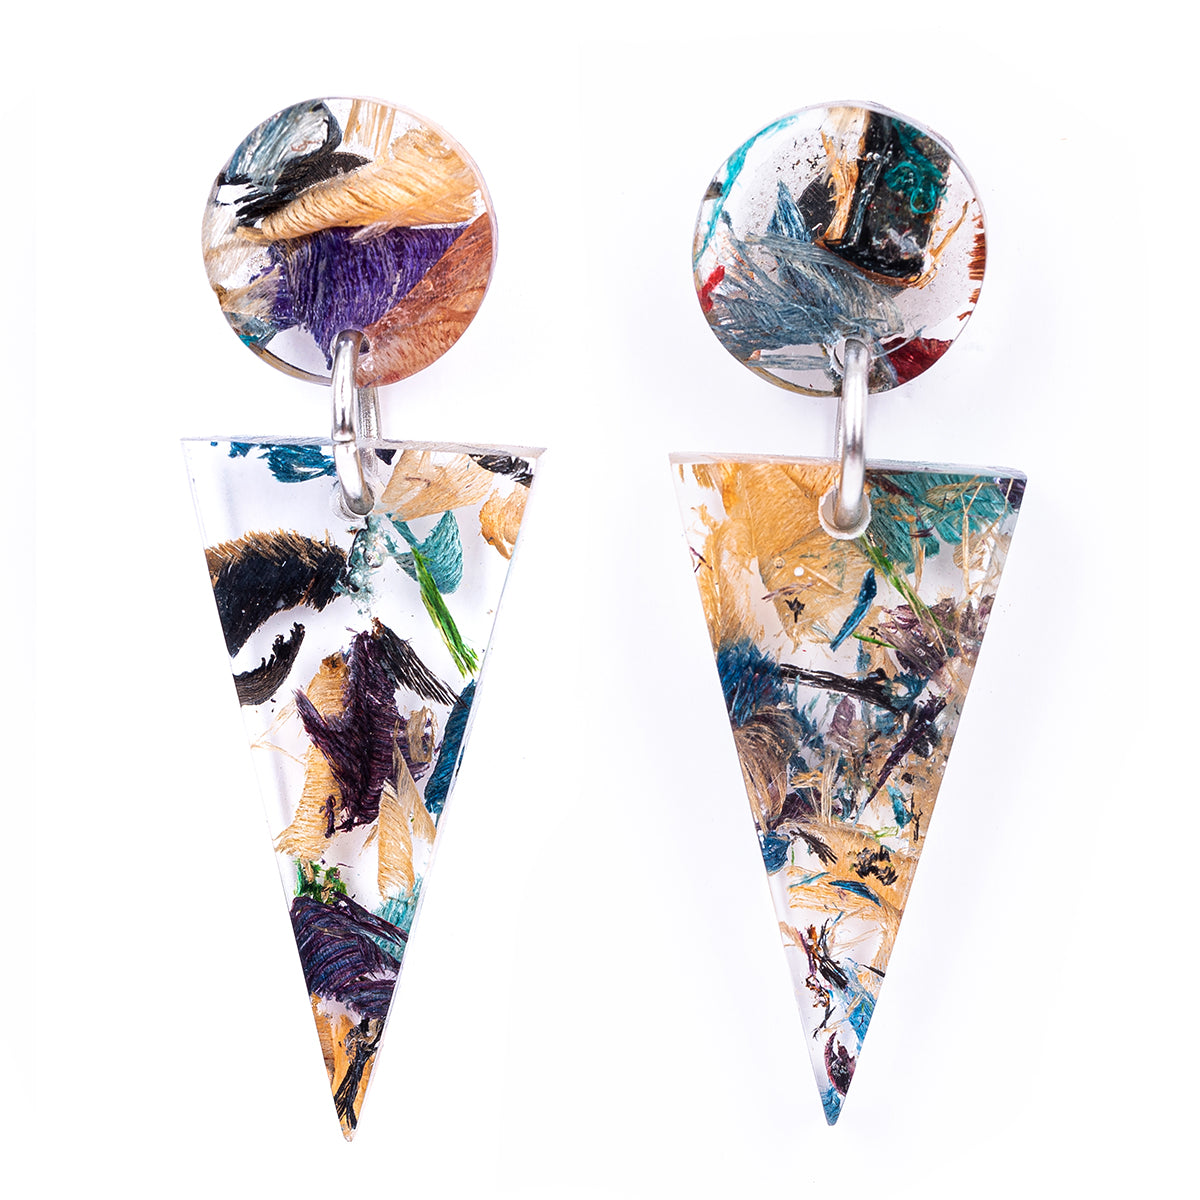 Shari Geometric Statement Resin Earrings by Paguro Upcycle